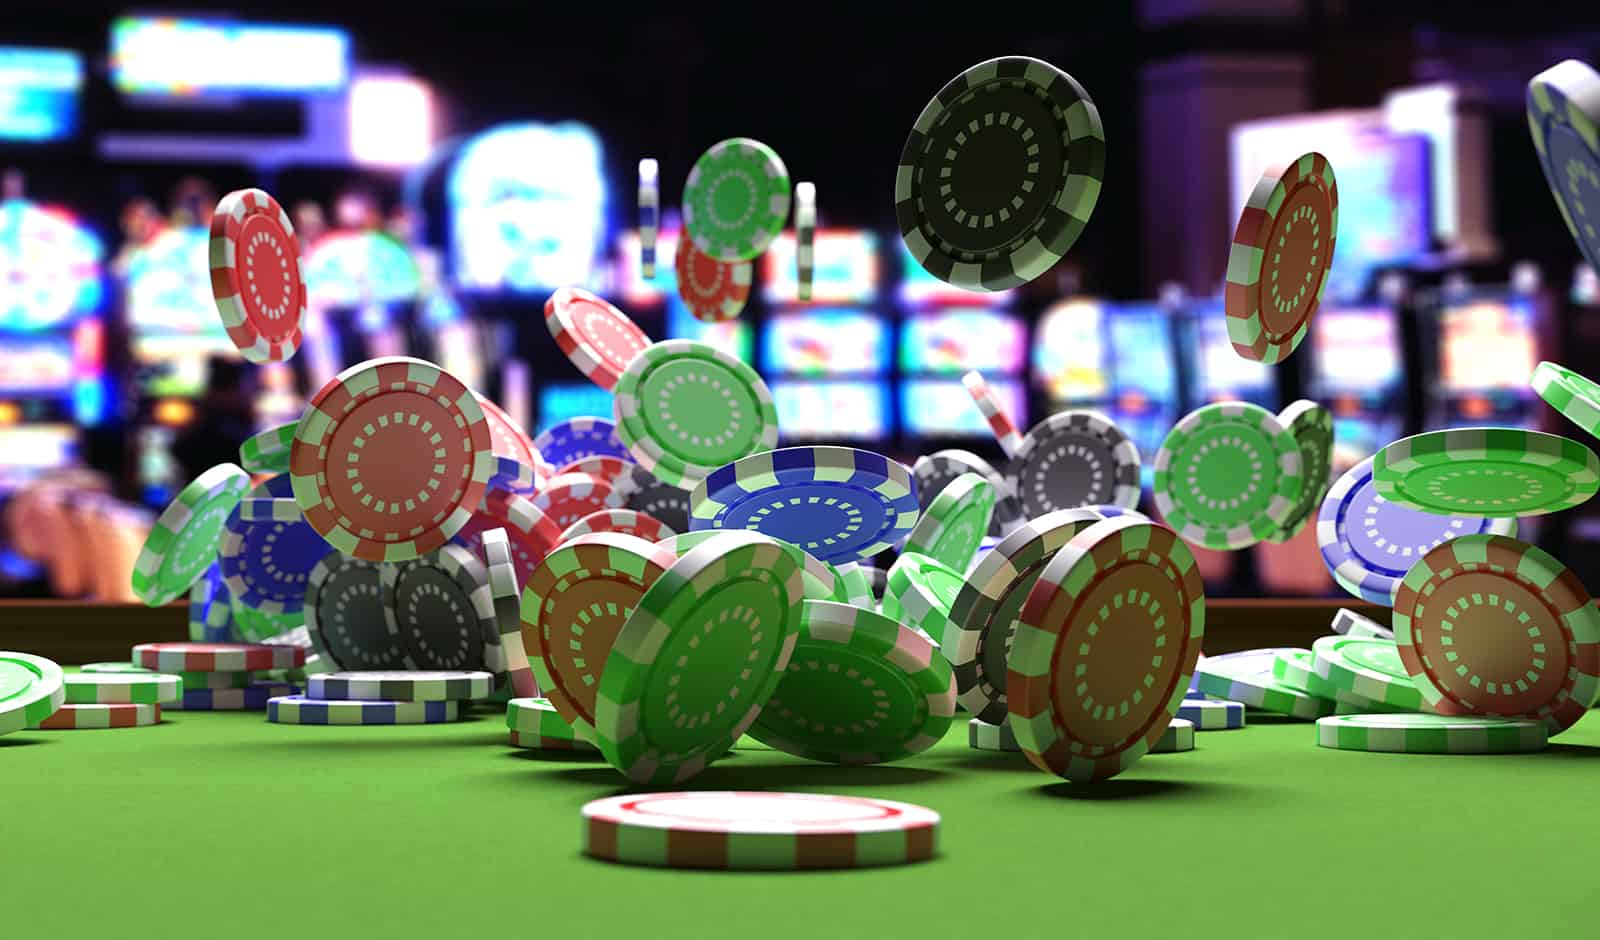 What are Technological Trends Behind the Gambling Industry? - VIVA ...